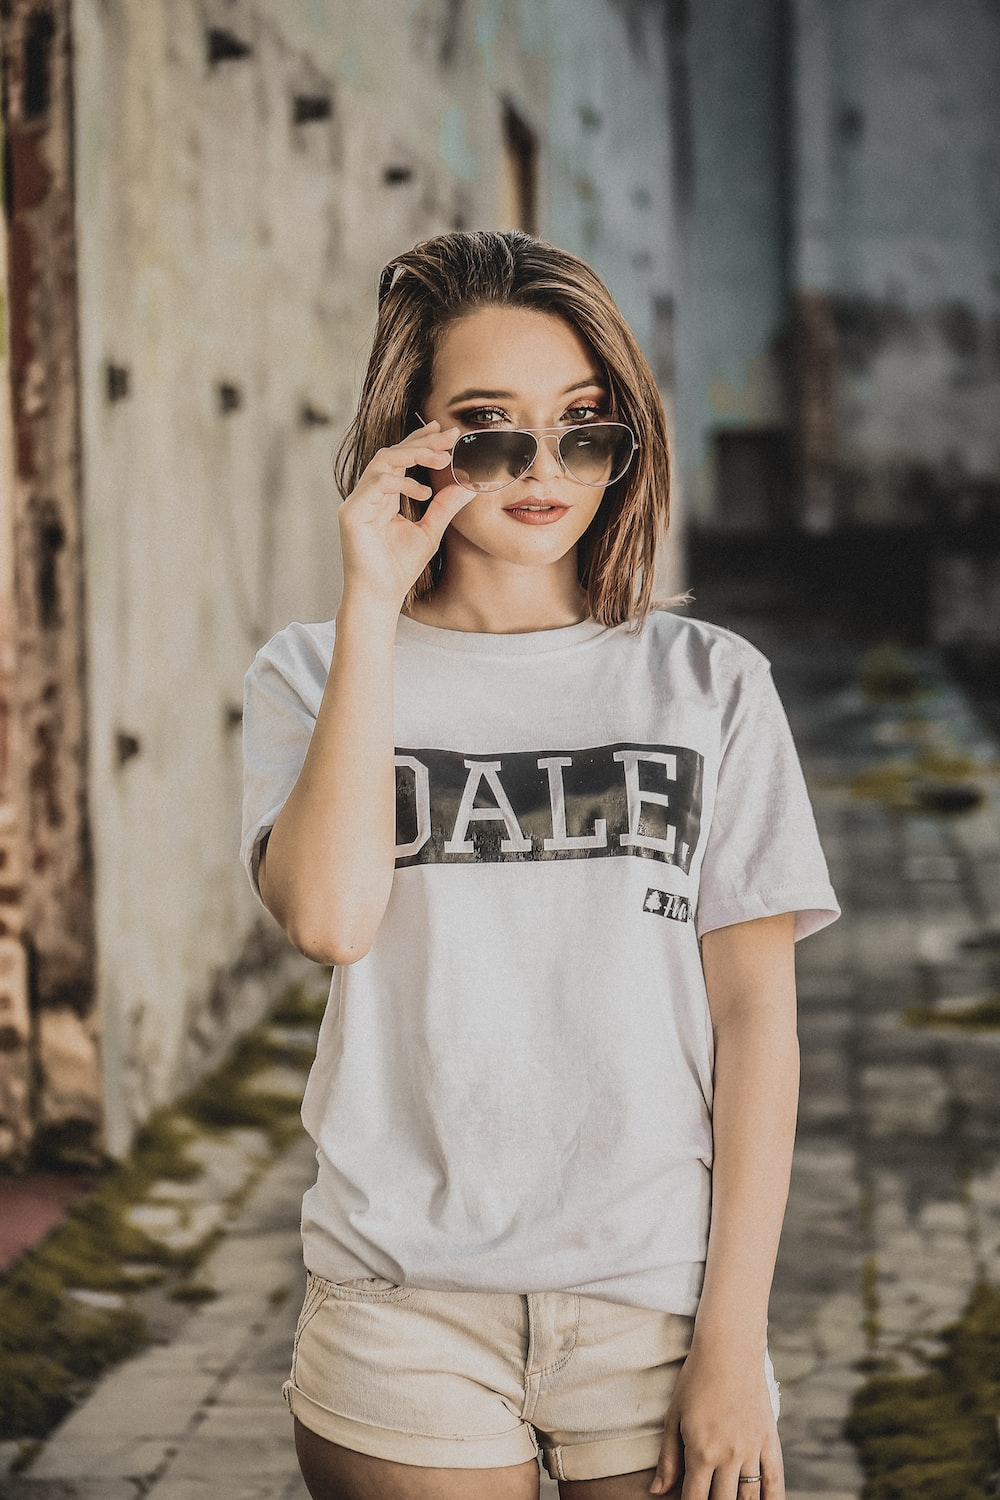 woman in white top holding sunglasses